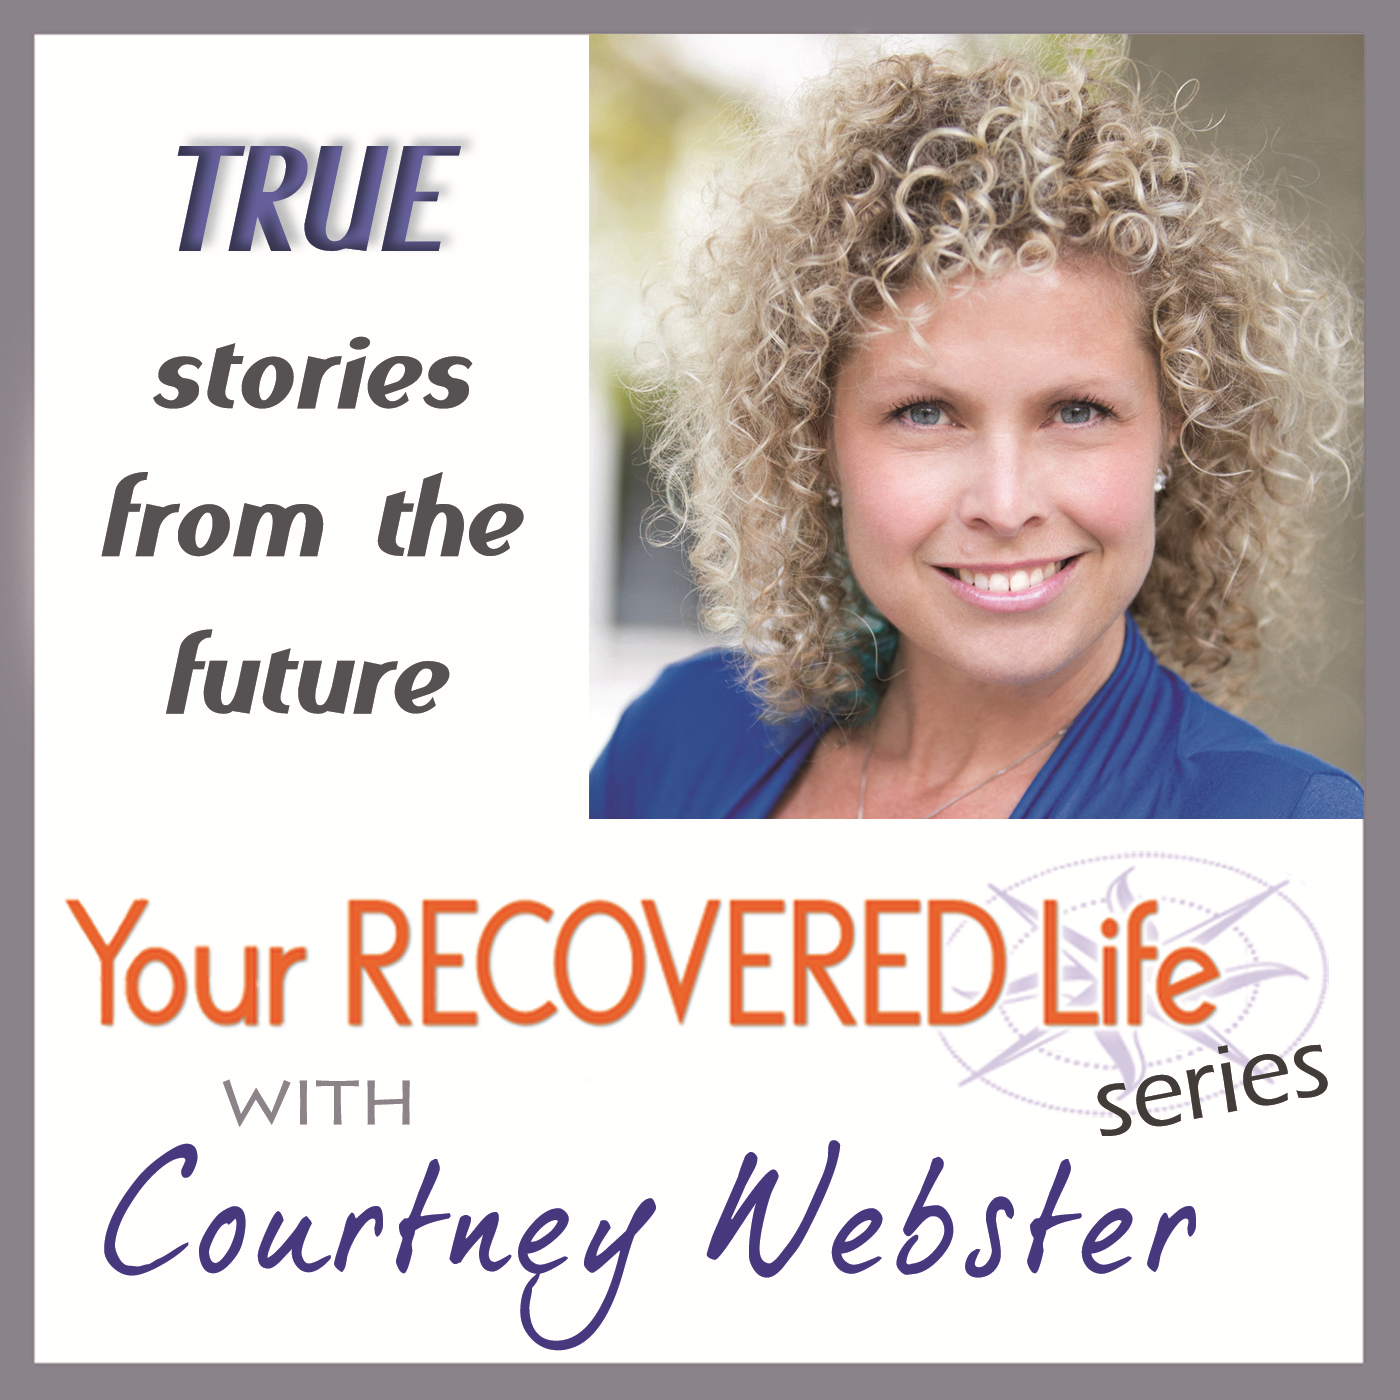 Your Recovered Life Series